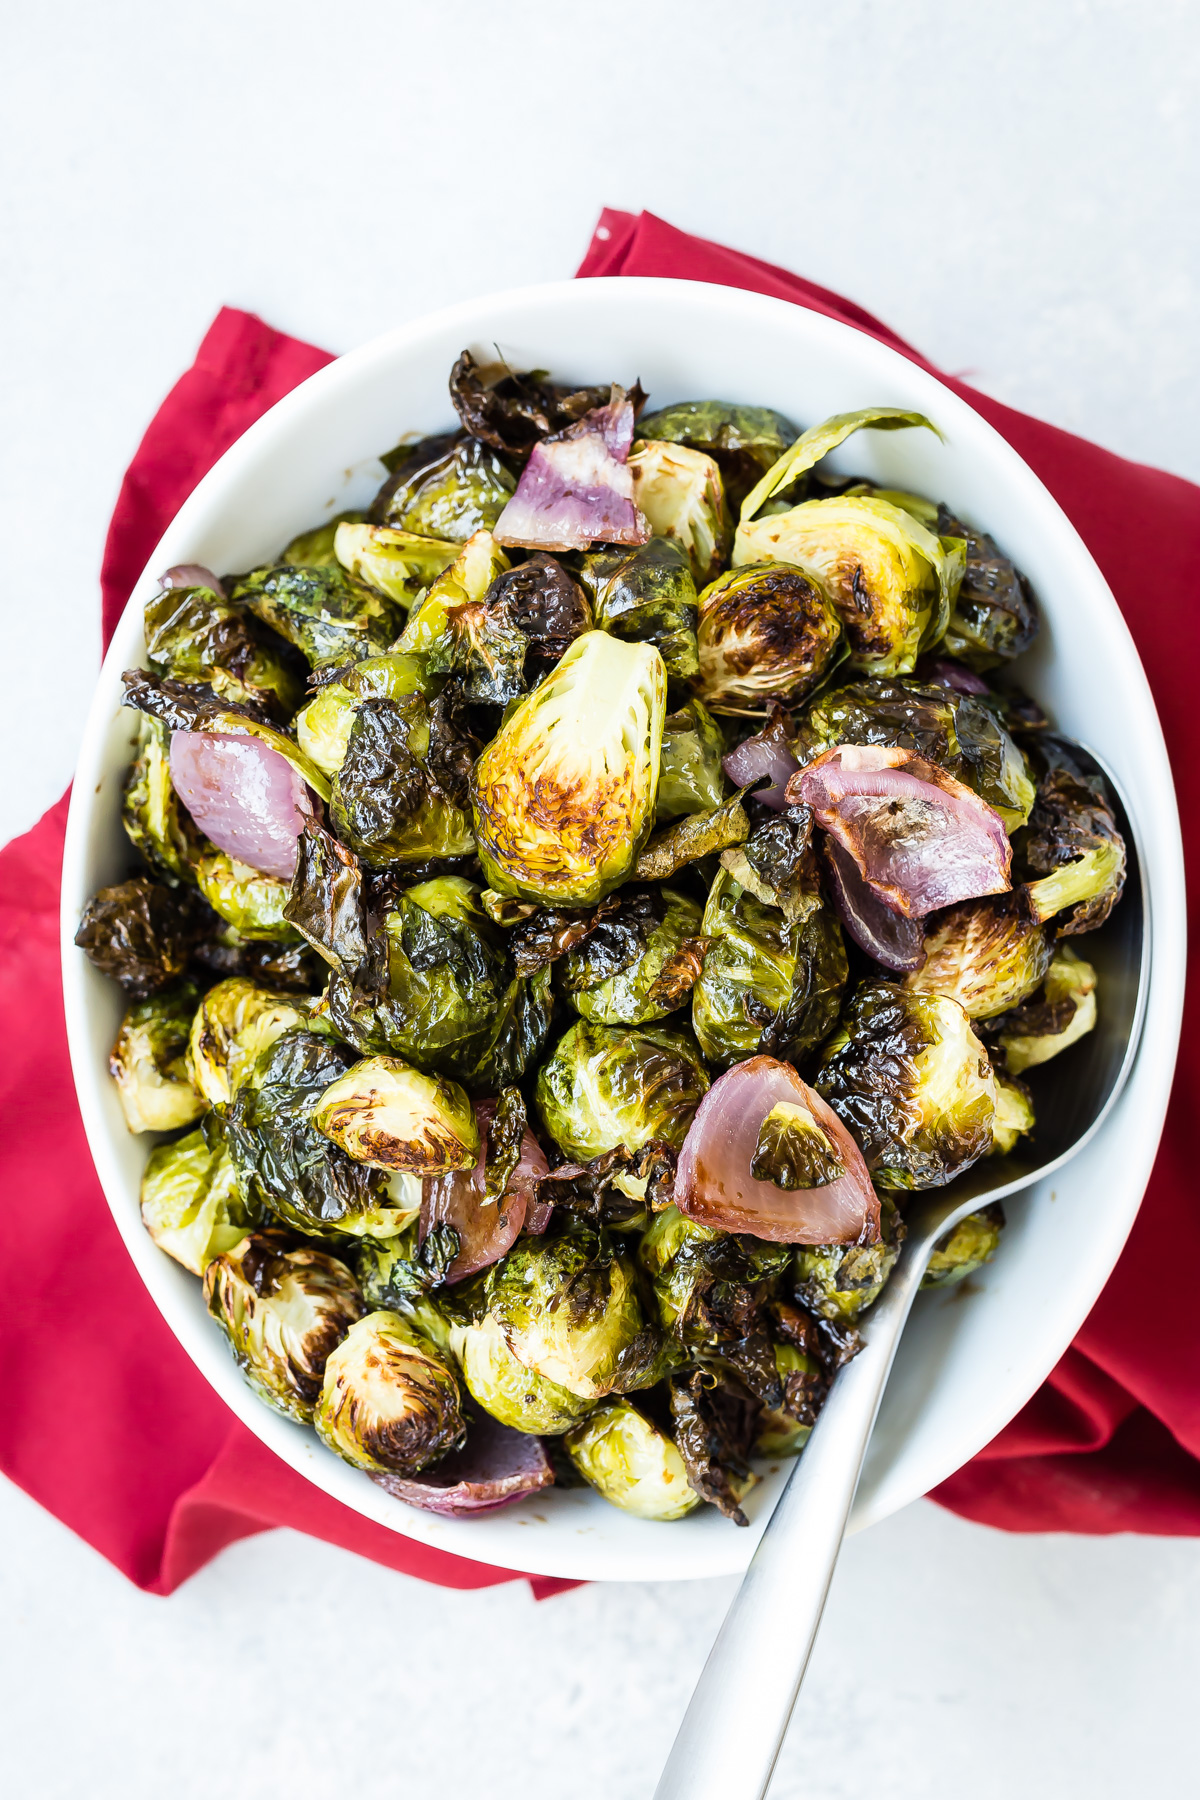 Roasted Balsamic Brussels Sprouts recipe from Weelicious.com